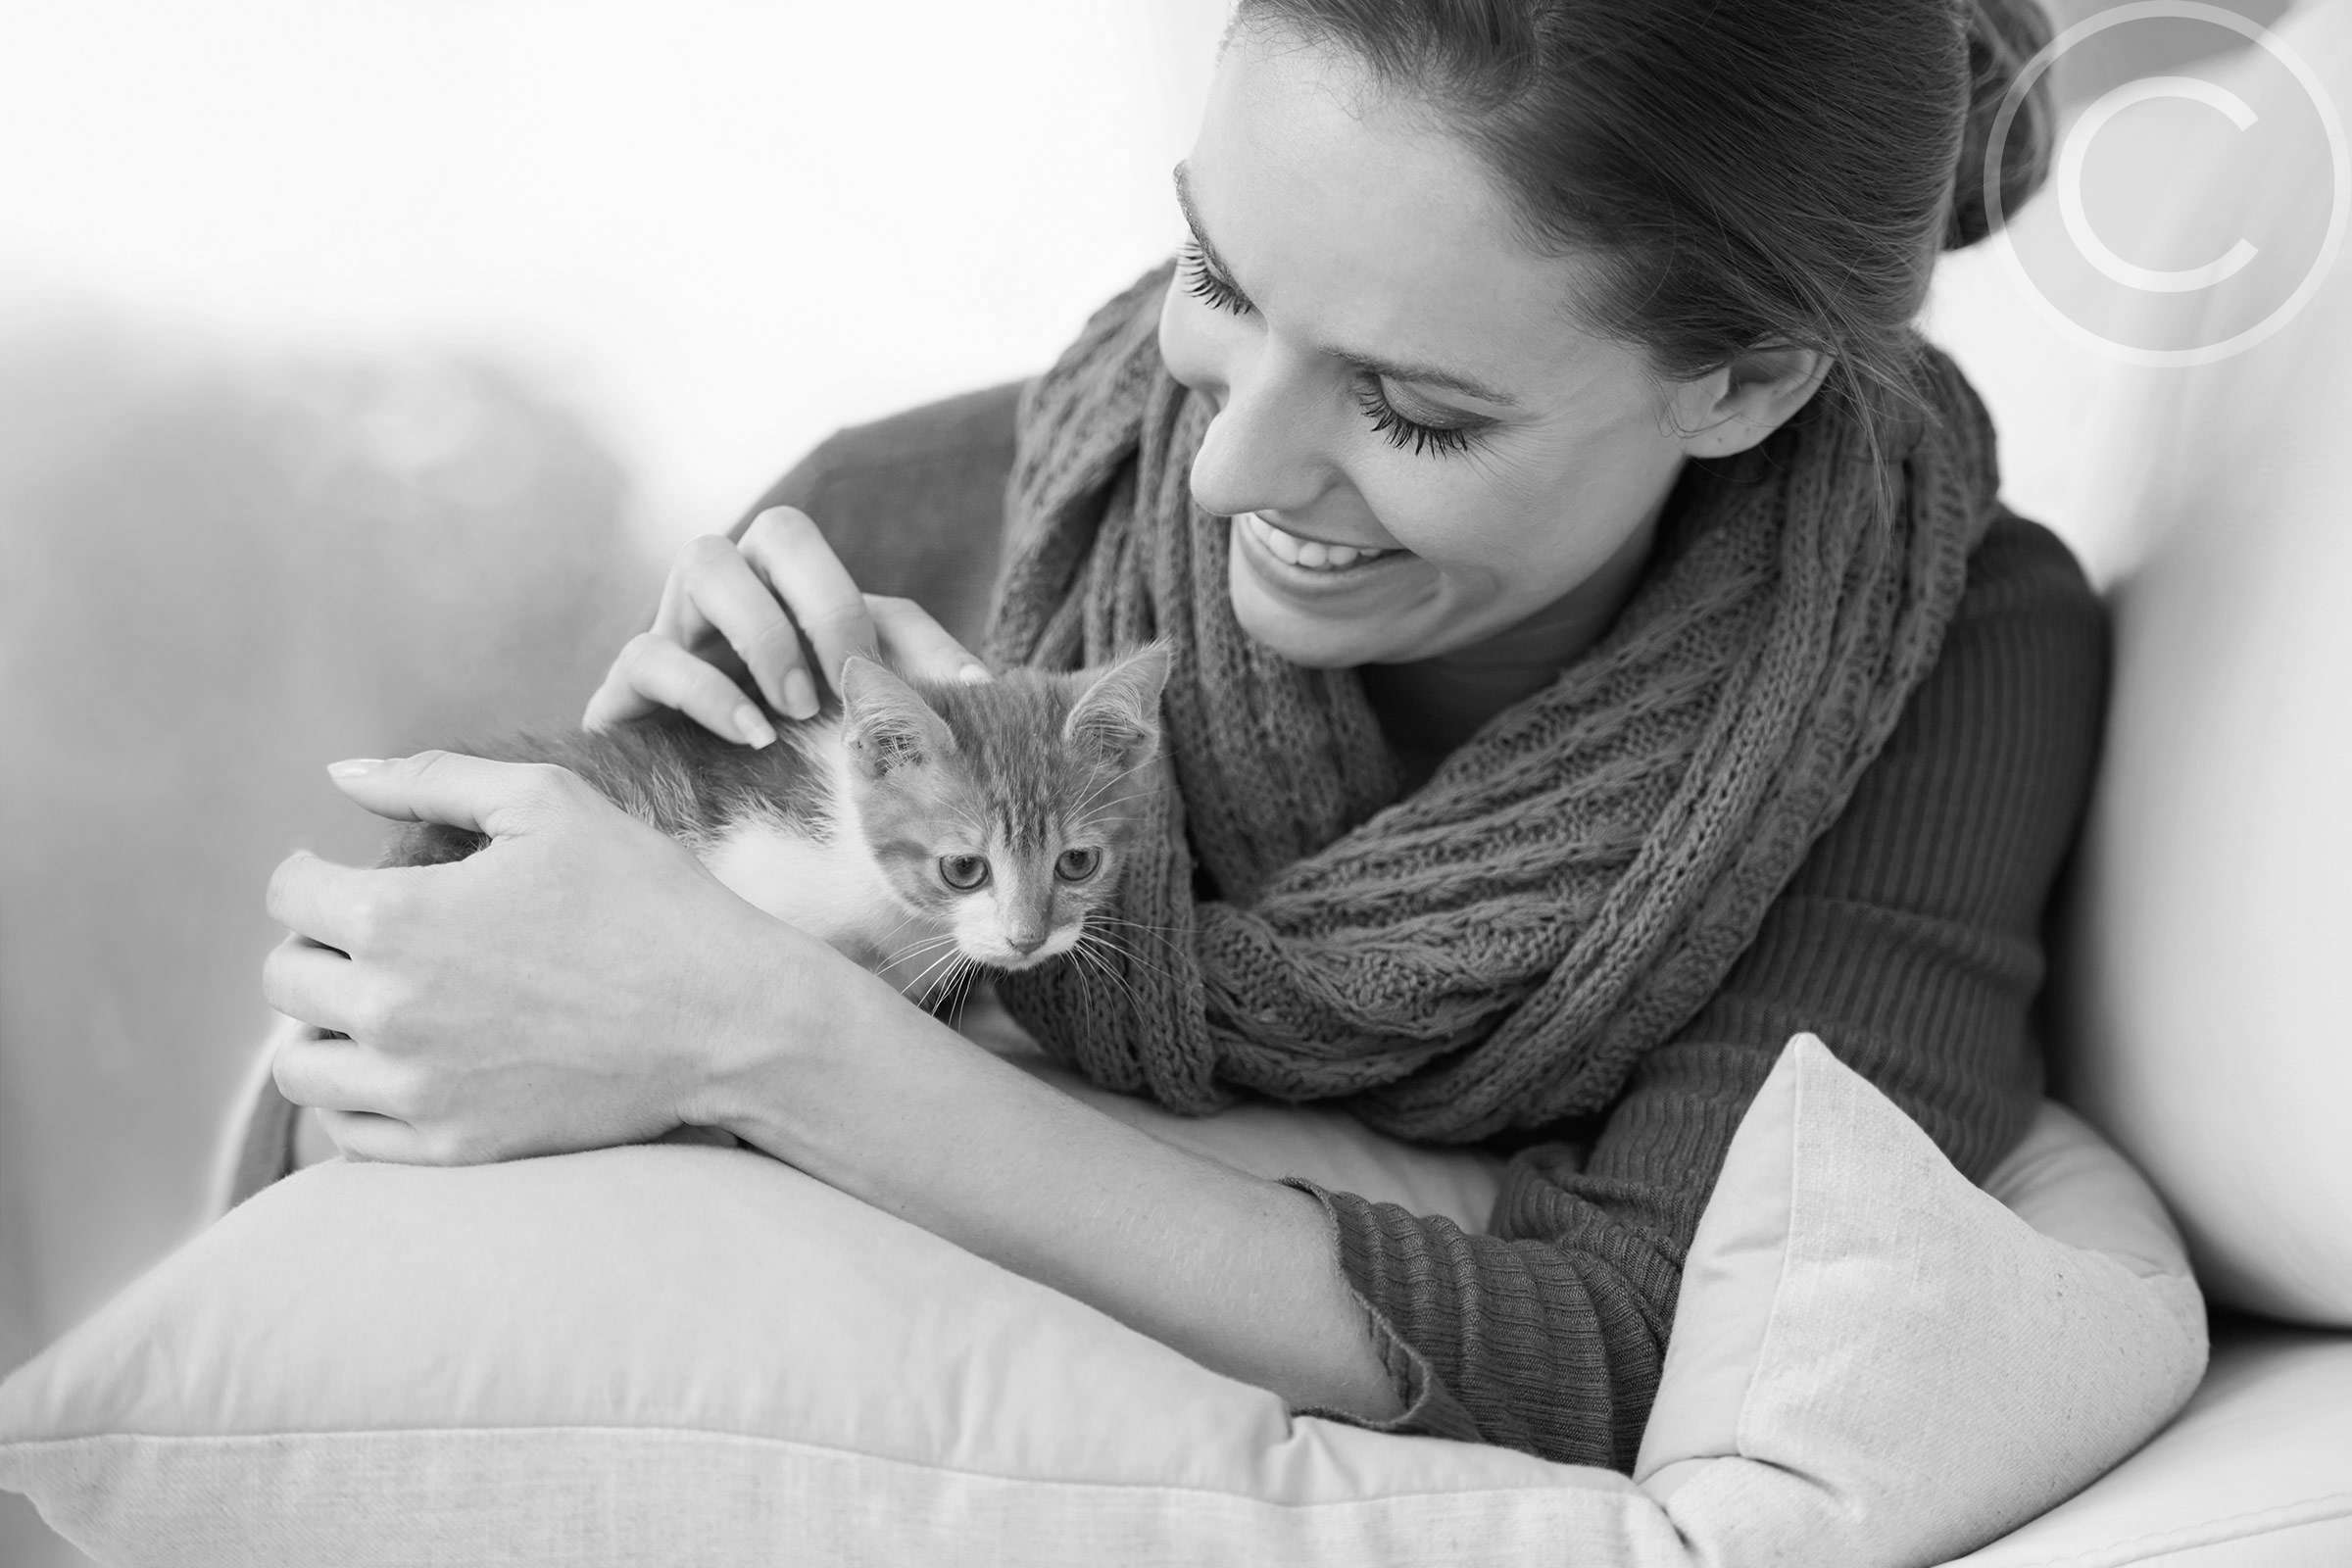 8 Tips for Taking the Perfect Photo of Pet